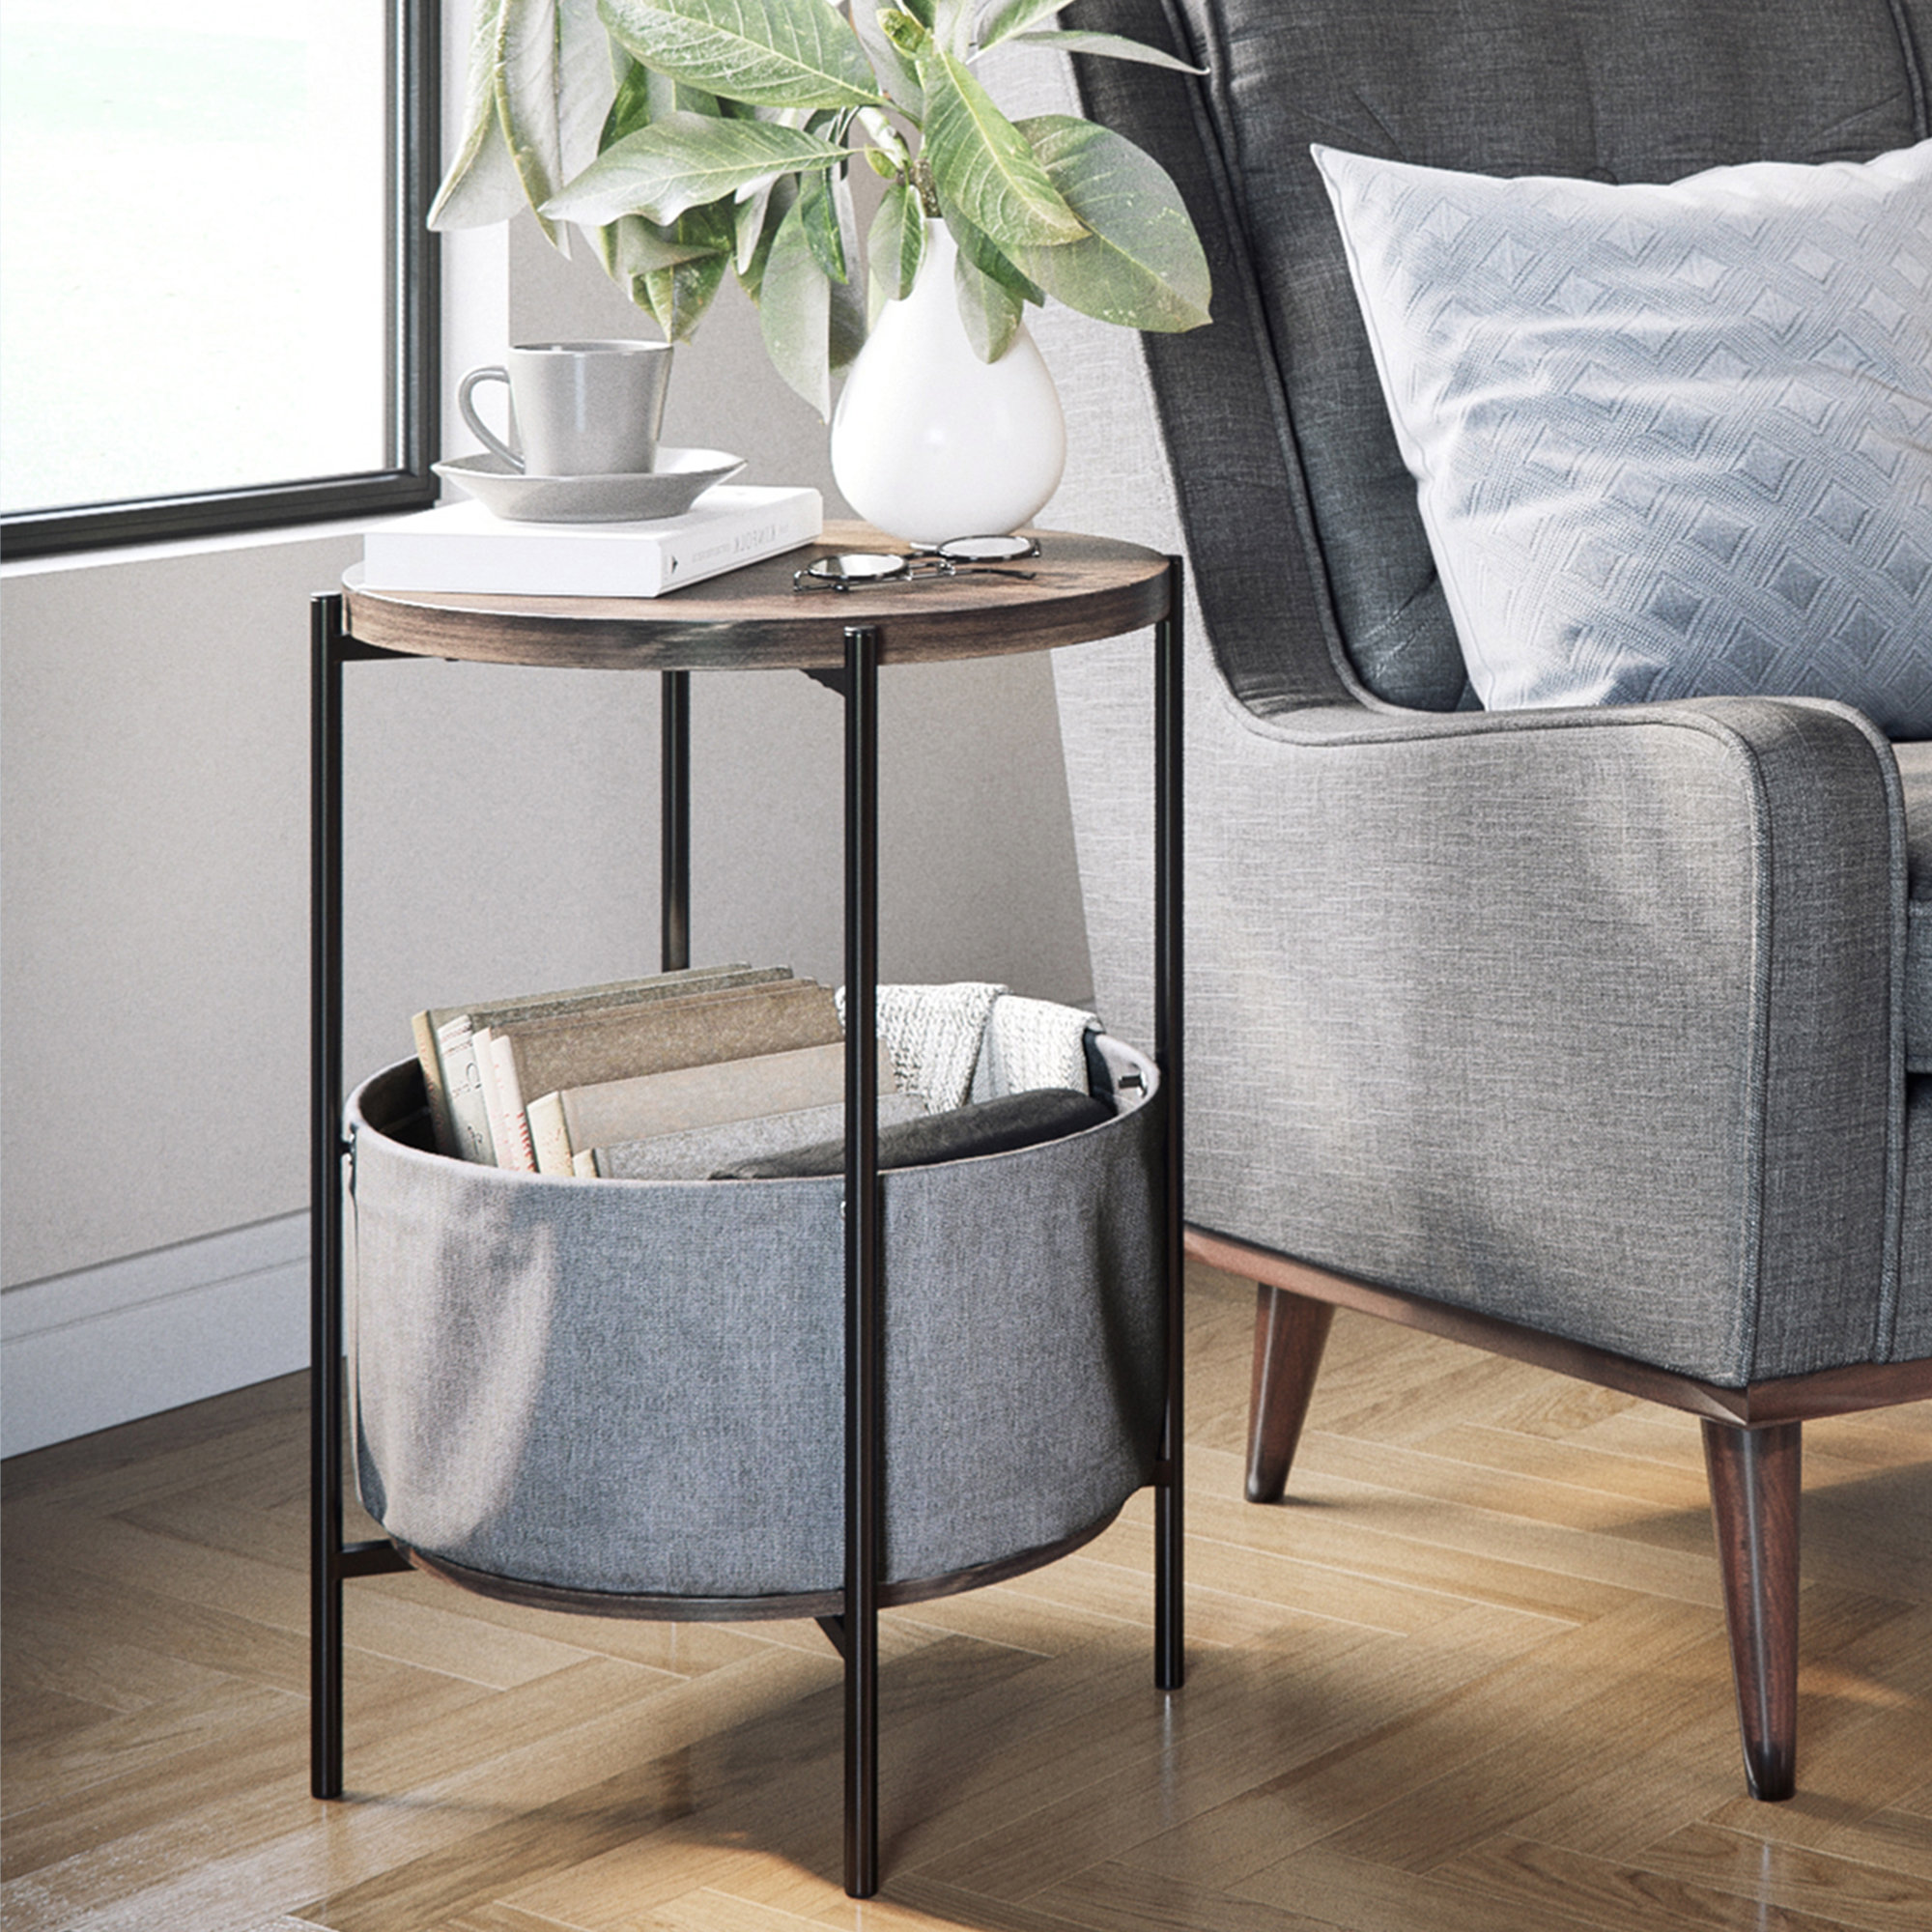 inch high end table bluxome with storage modern farmhouse accent quickview ashley chairs oversized comfy chair nautical dining room chandelier long uttermost samuelle coffee